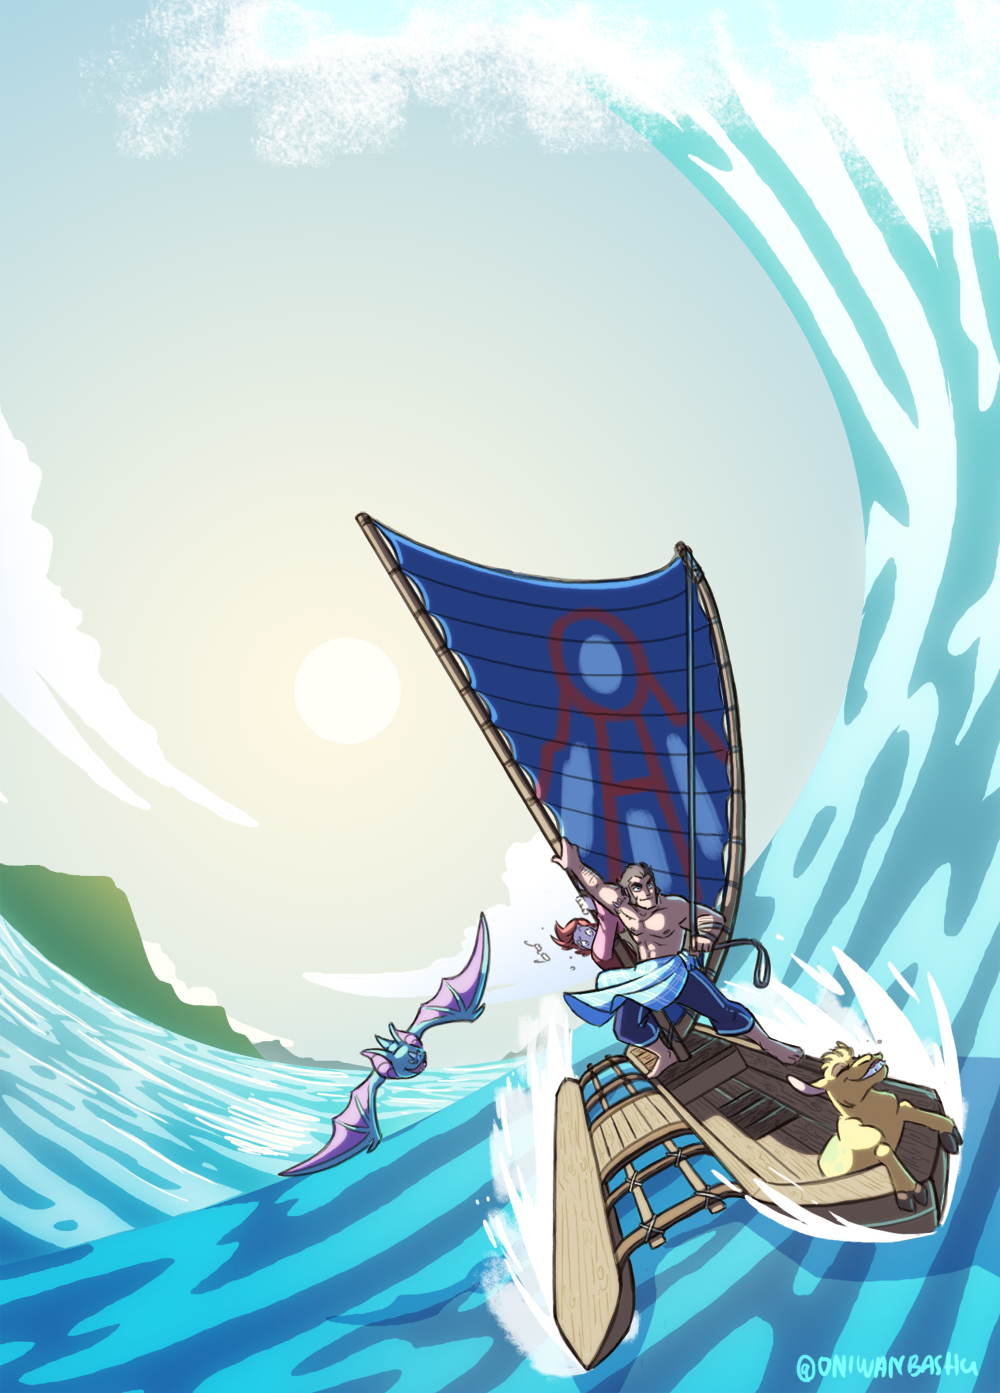 old_gods_and_new_worlds__how_far_we_ll_go_by_oniwanbashu-daqagfn.png